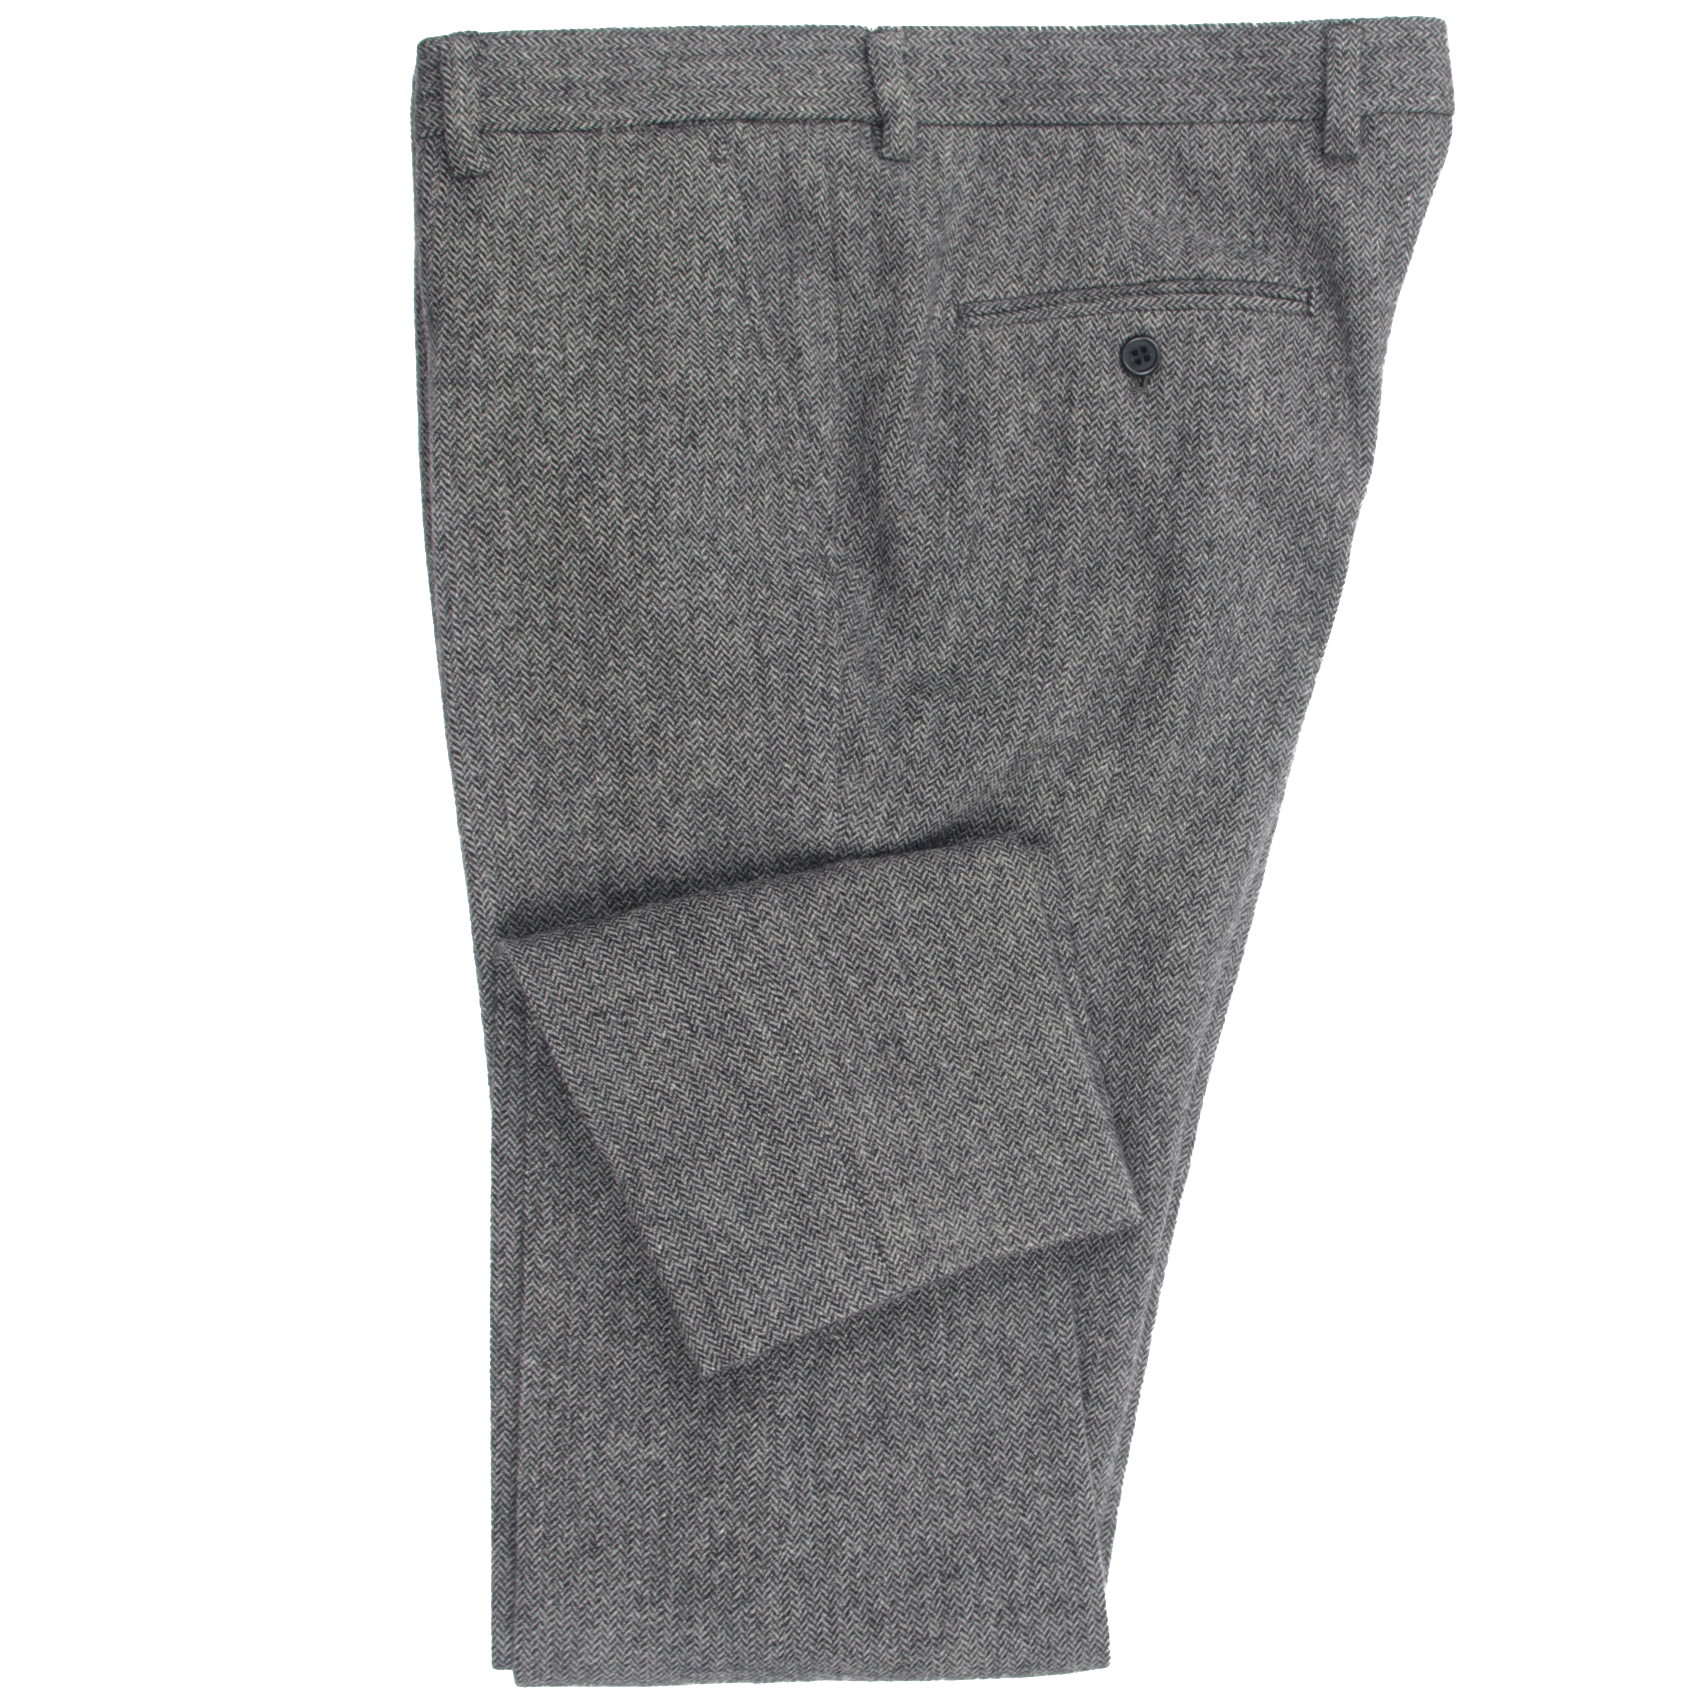 2020 Heavy Warm Wool Blend Pants Tailor Made Dark Grey Herringbone Men Slim Fit Business Dress Pants Heavy Winter Pants